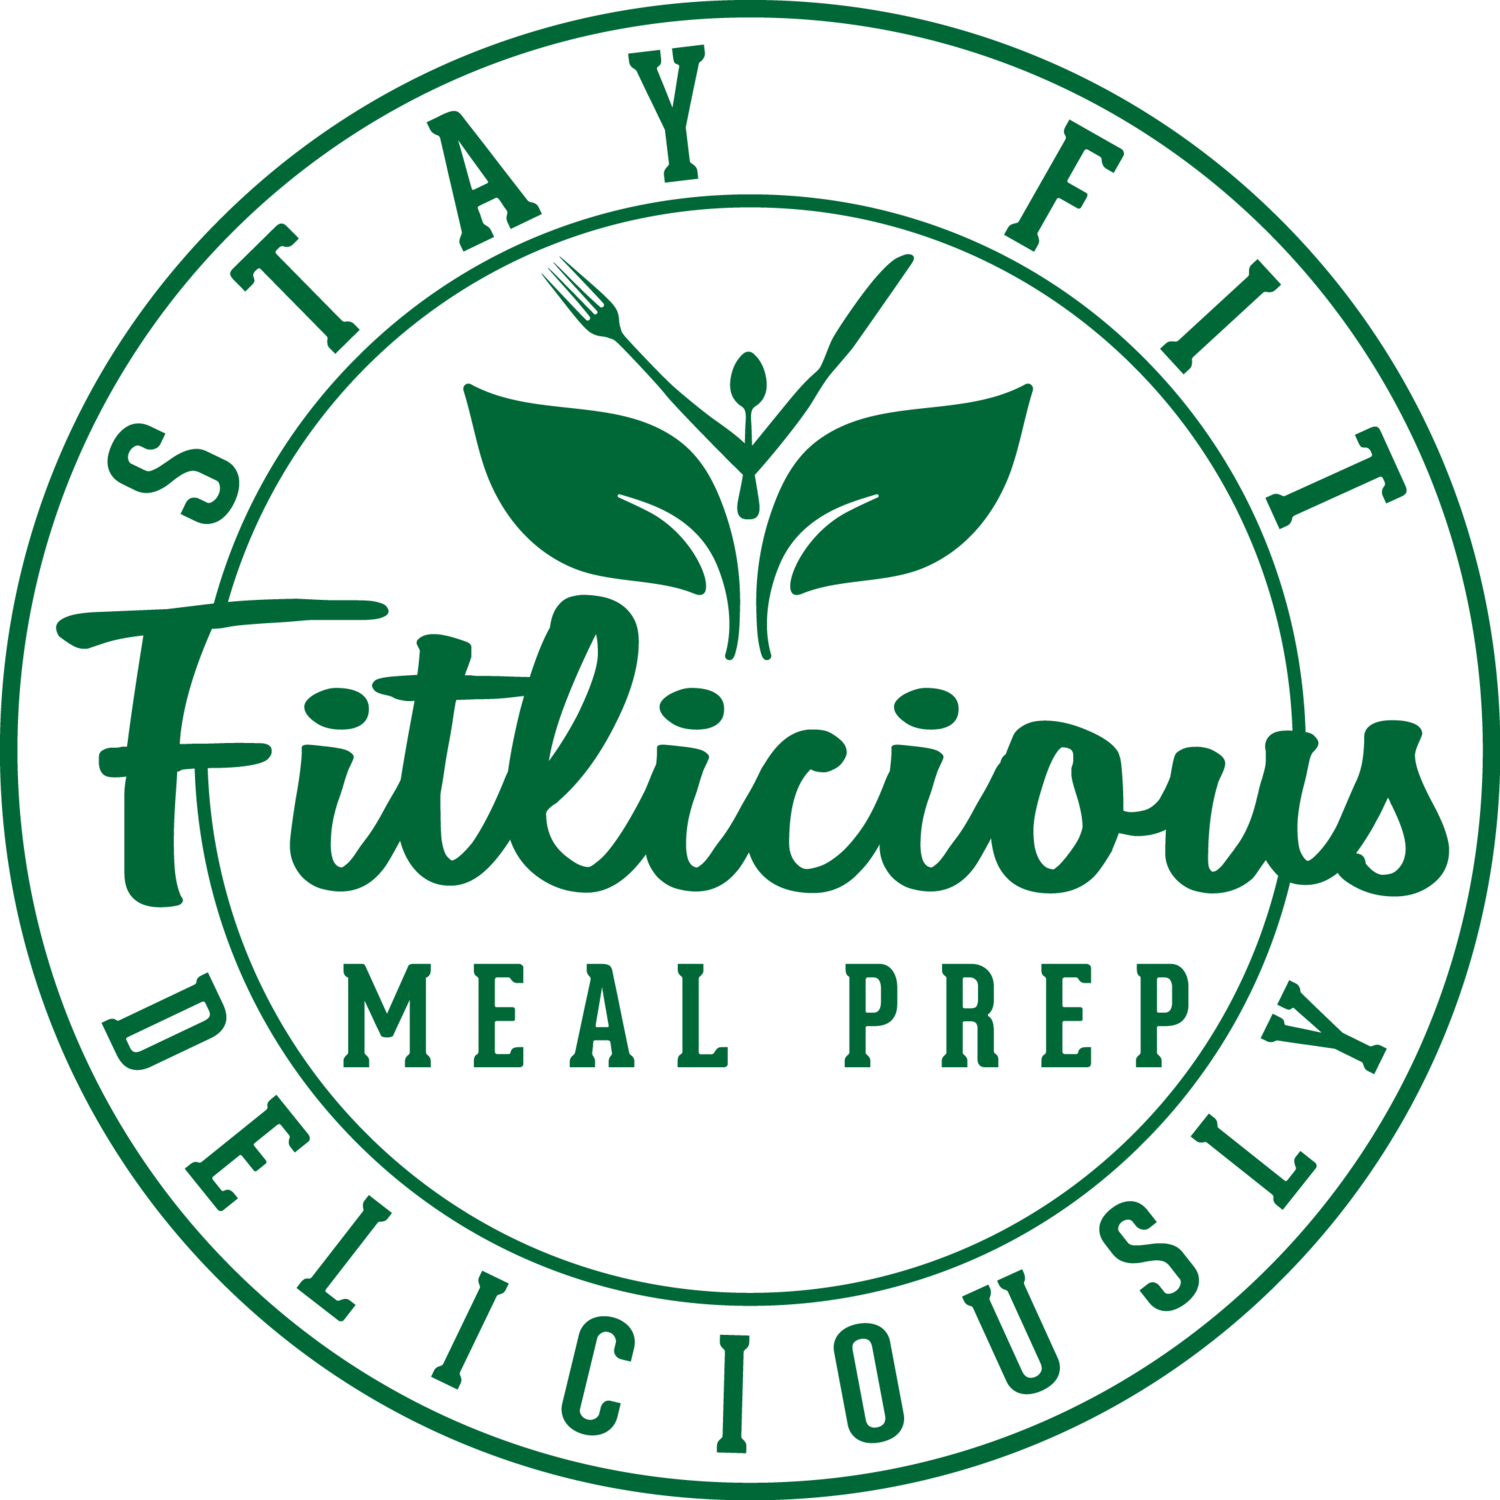 Fitlicious Meal Prep - Woodland Hills, San Fernando Valley & Los Angeles Meal Prep and Delivery